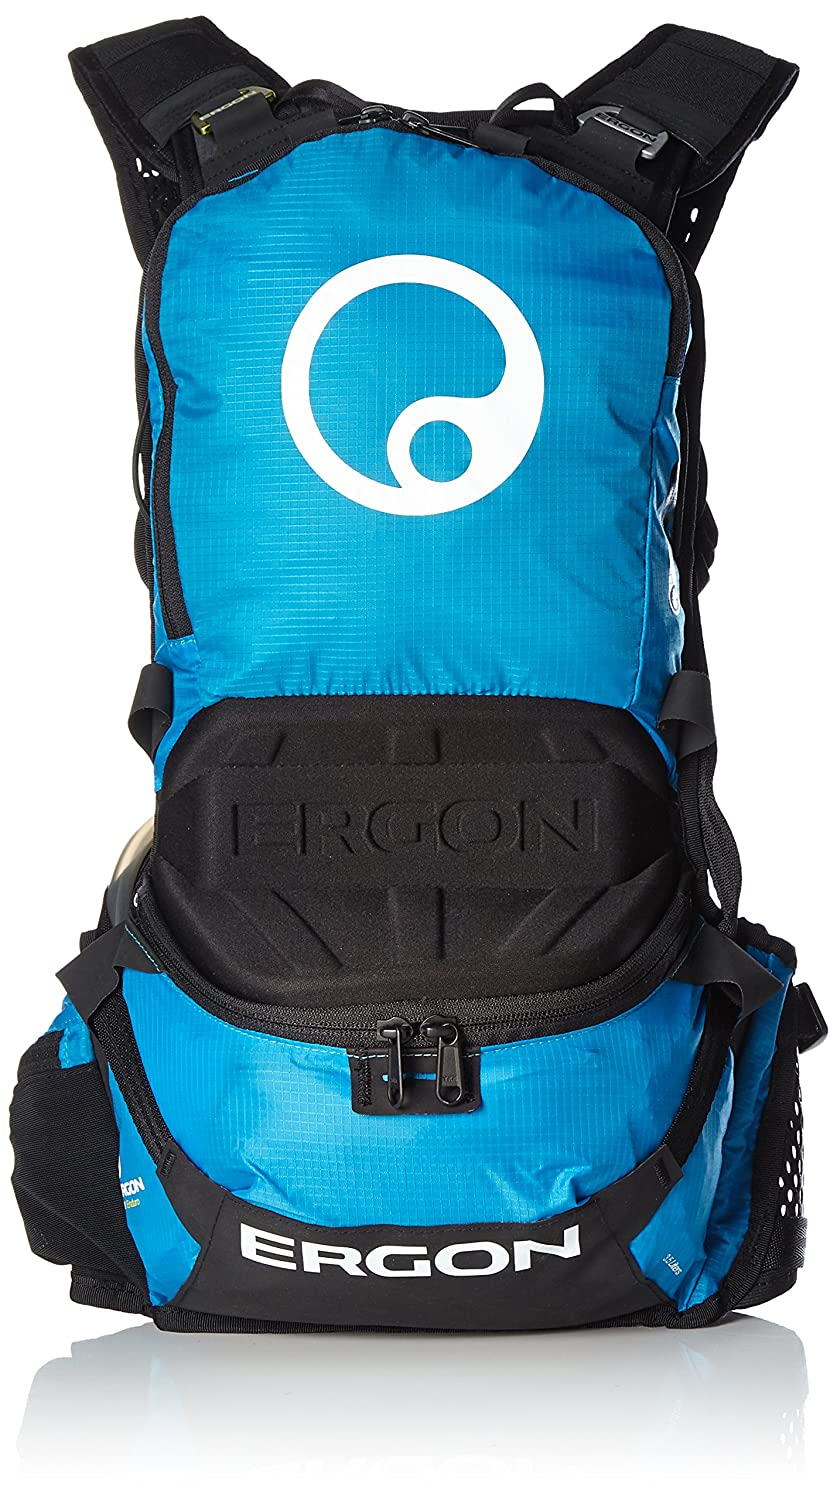 ERGON Sac à dos BE1 Enduro PROTEC multicolore NoirBleu